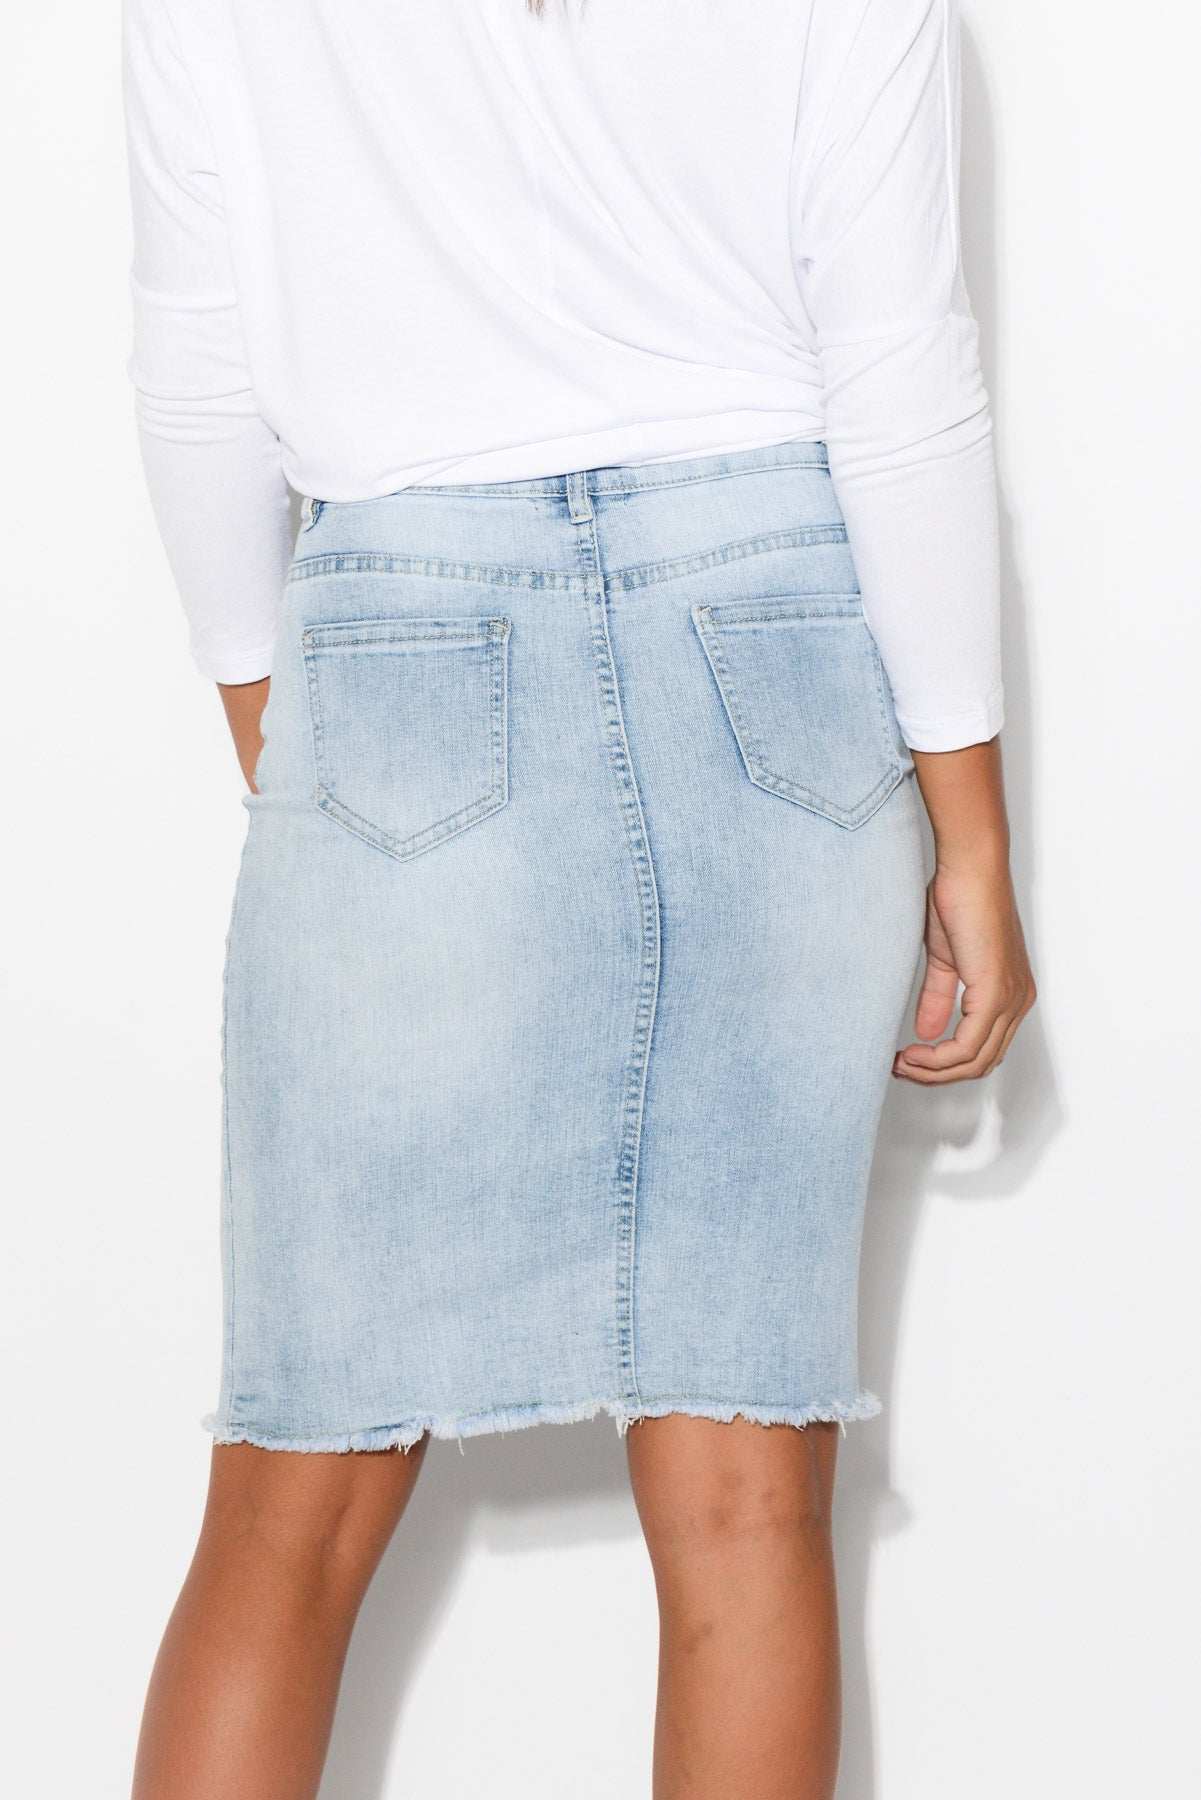 Bowie Light Denim Skirt - Blue Bungalow